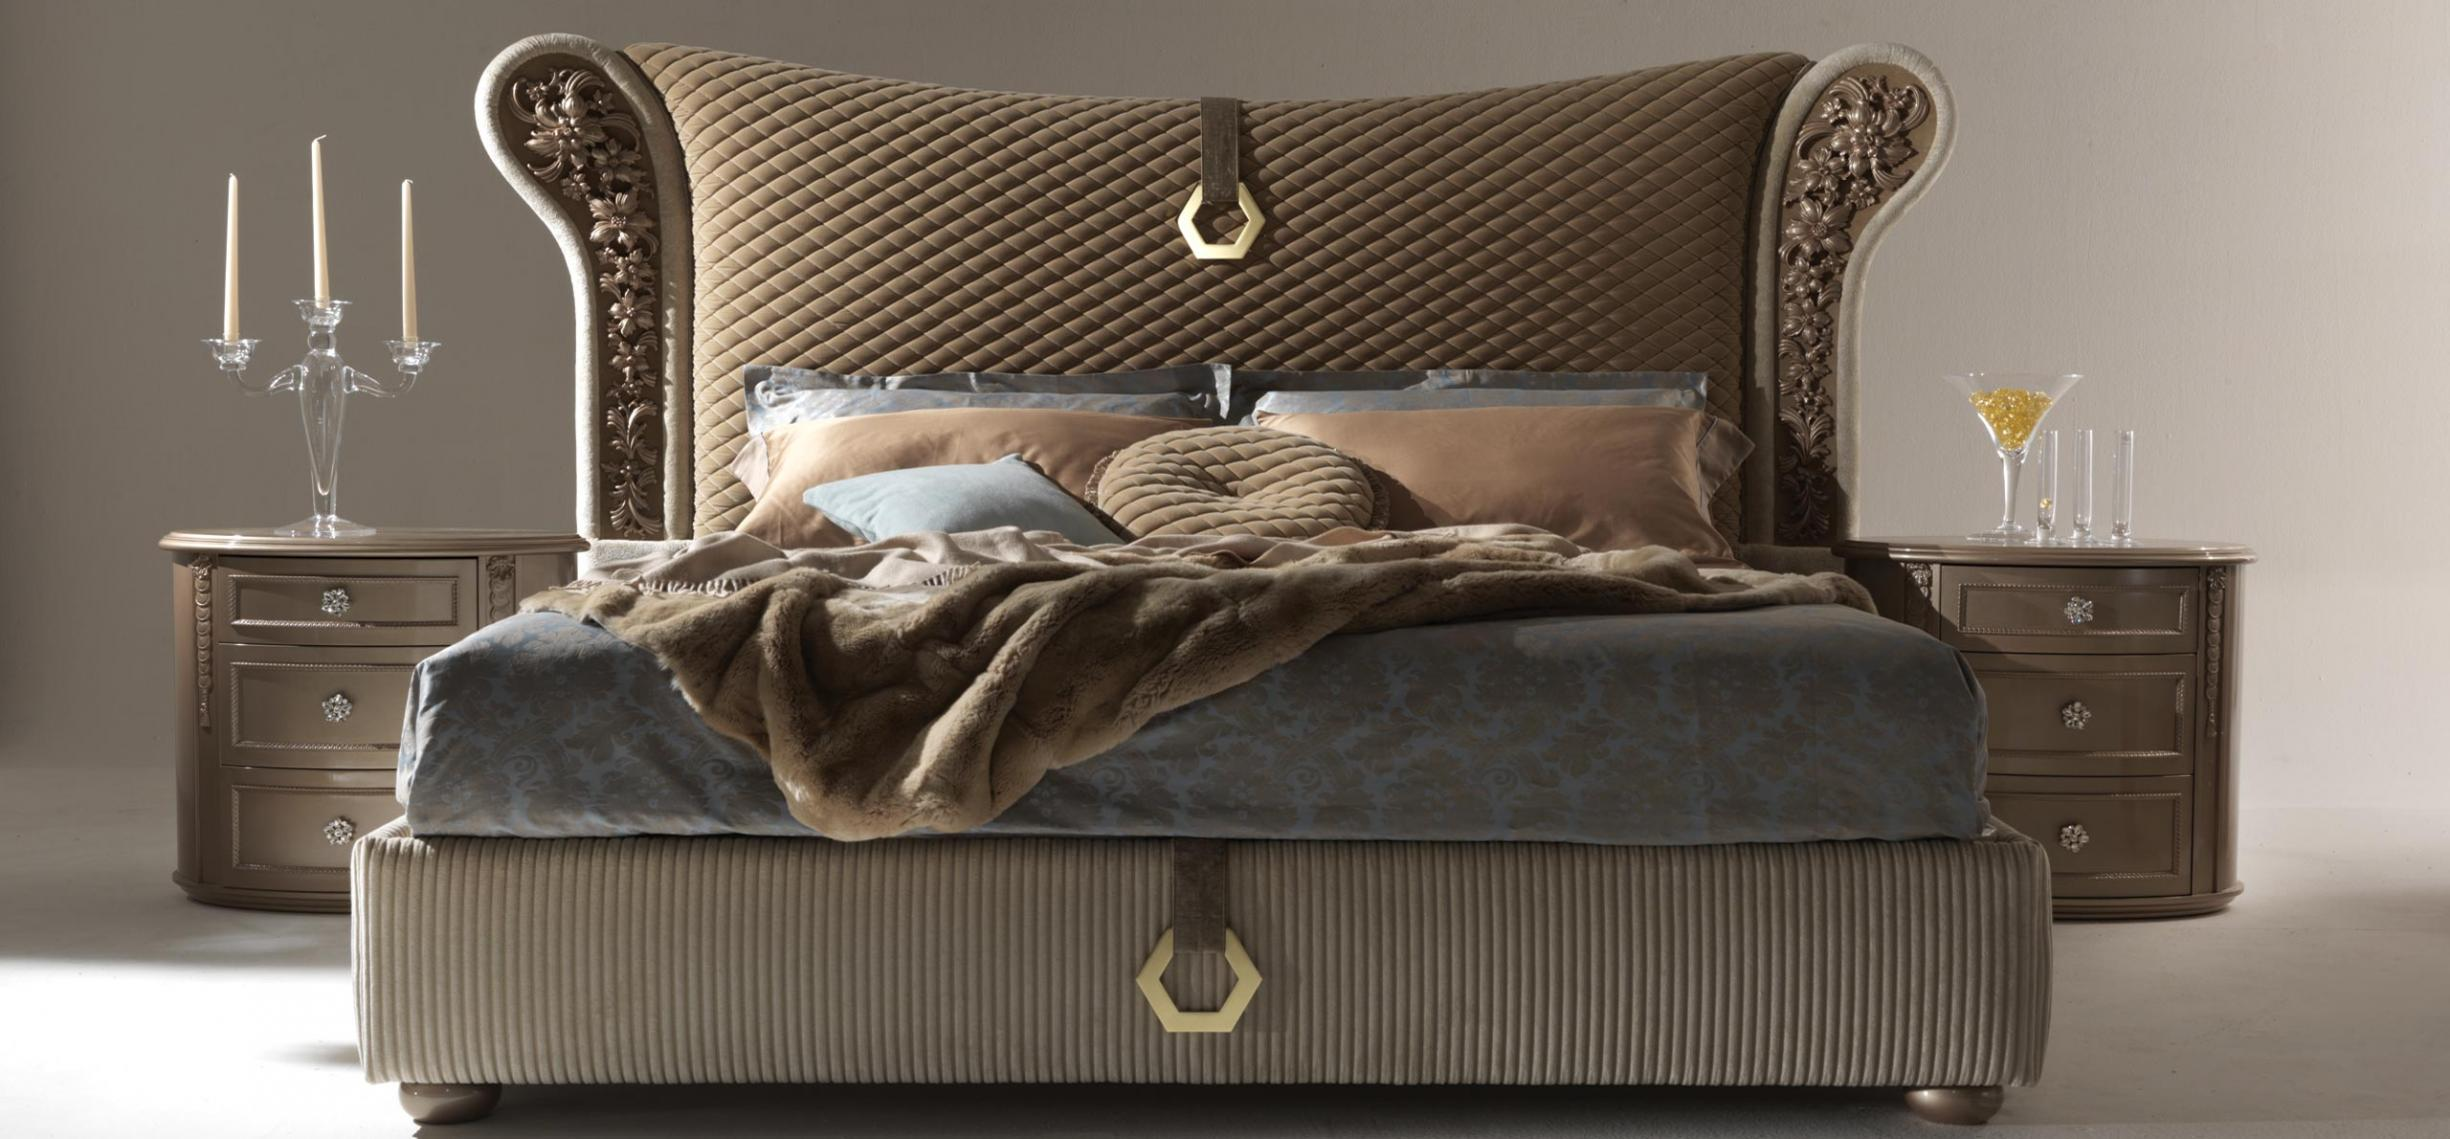 Caspani Tino Luxury Furniture 100 Made In Italy